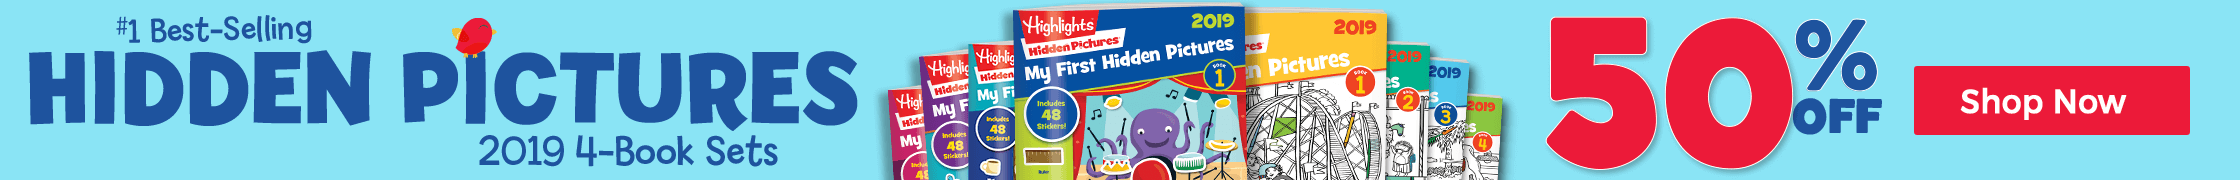 Hidden Pictures 2019 4-Book Sets are 50% off